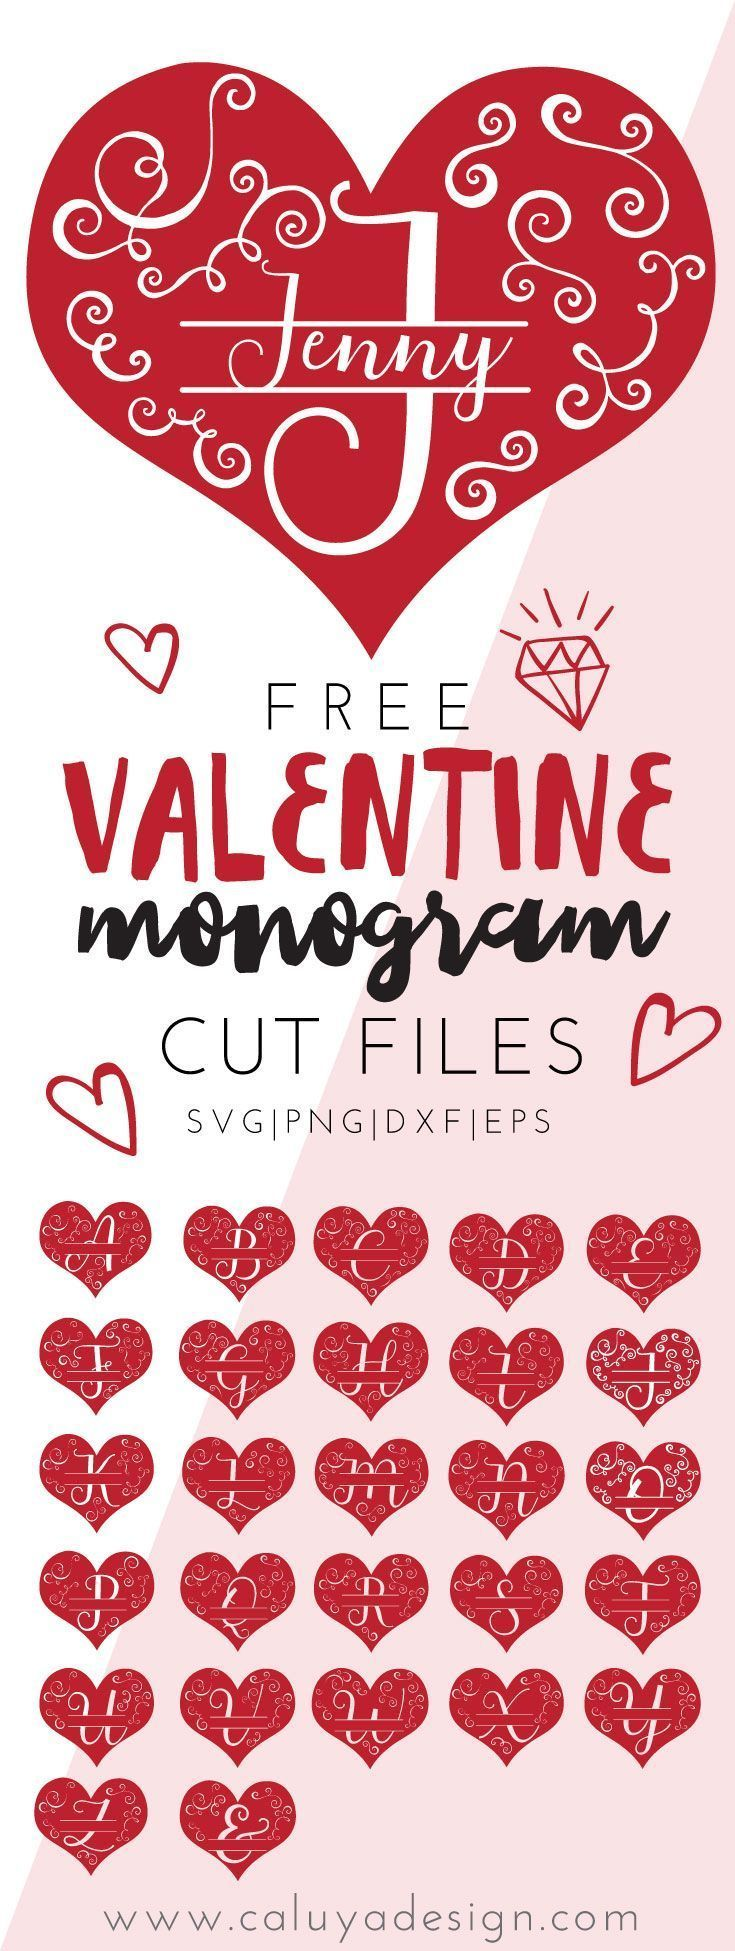 Heart Monogram FREE SVG, PNG, DXF & EPS by Cricut